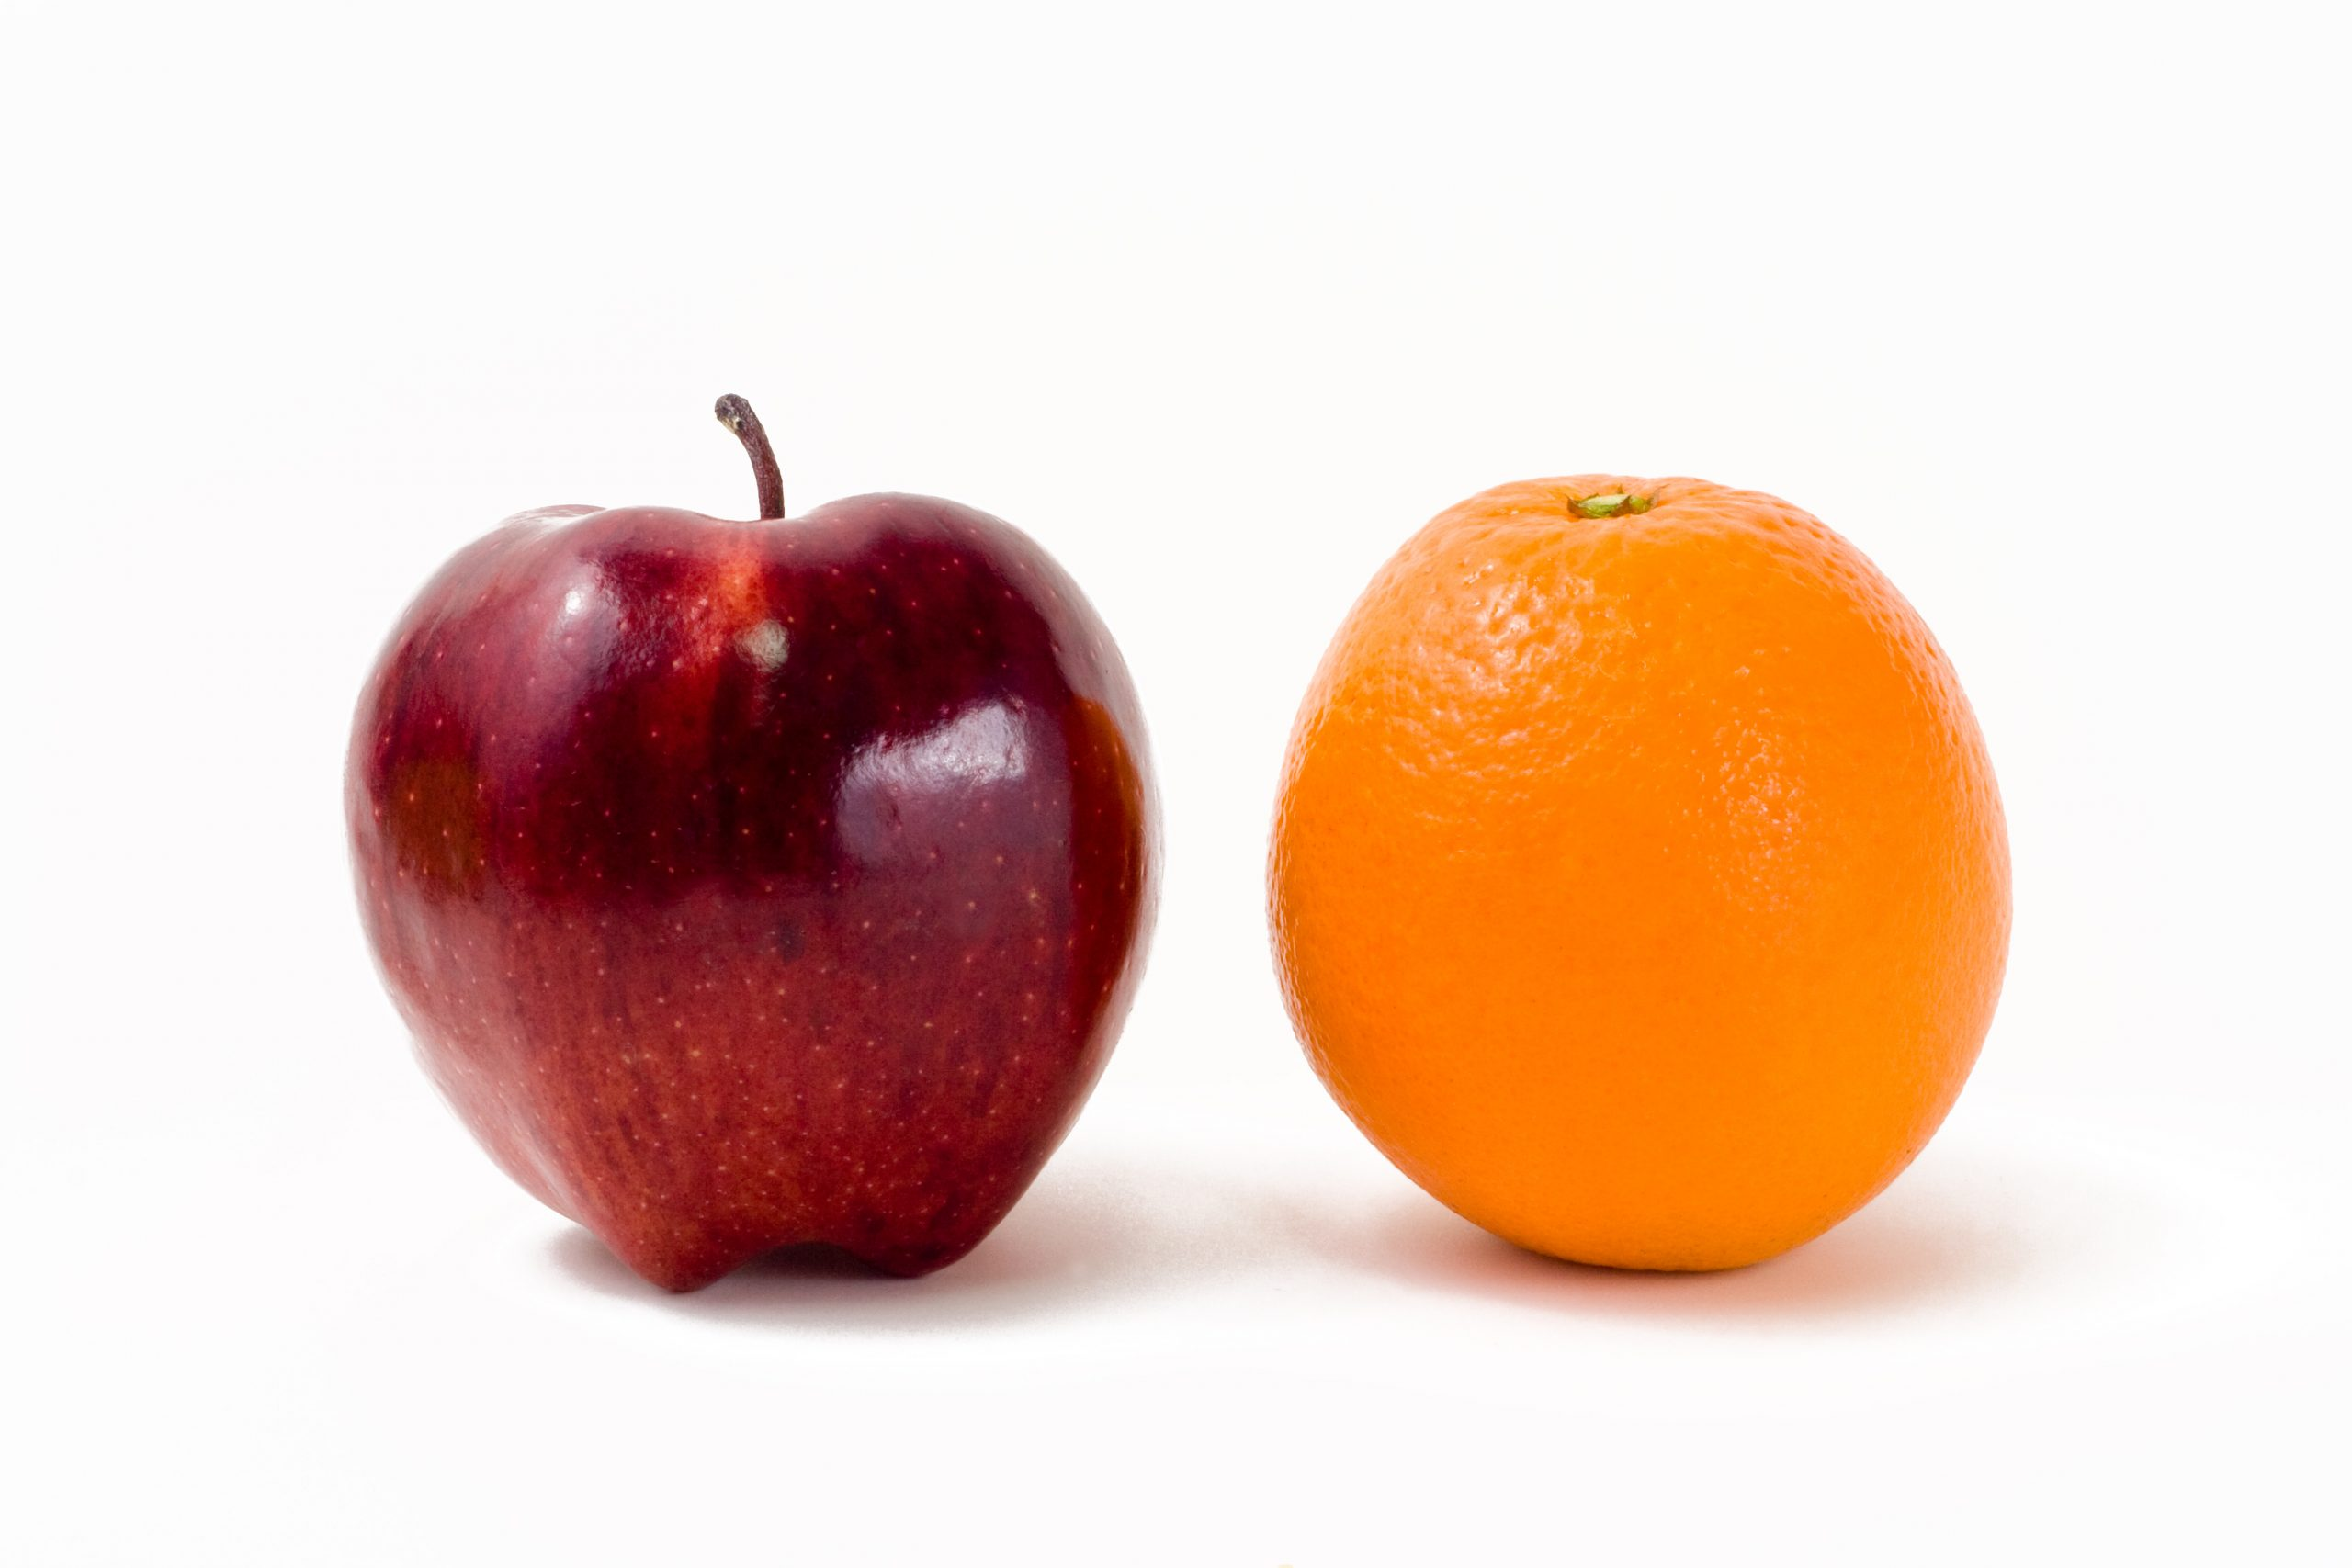 subjectivity in college admissions is a matter of comparing apples to oranges